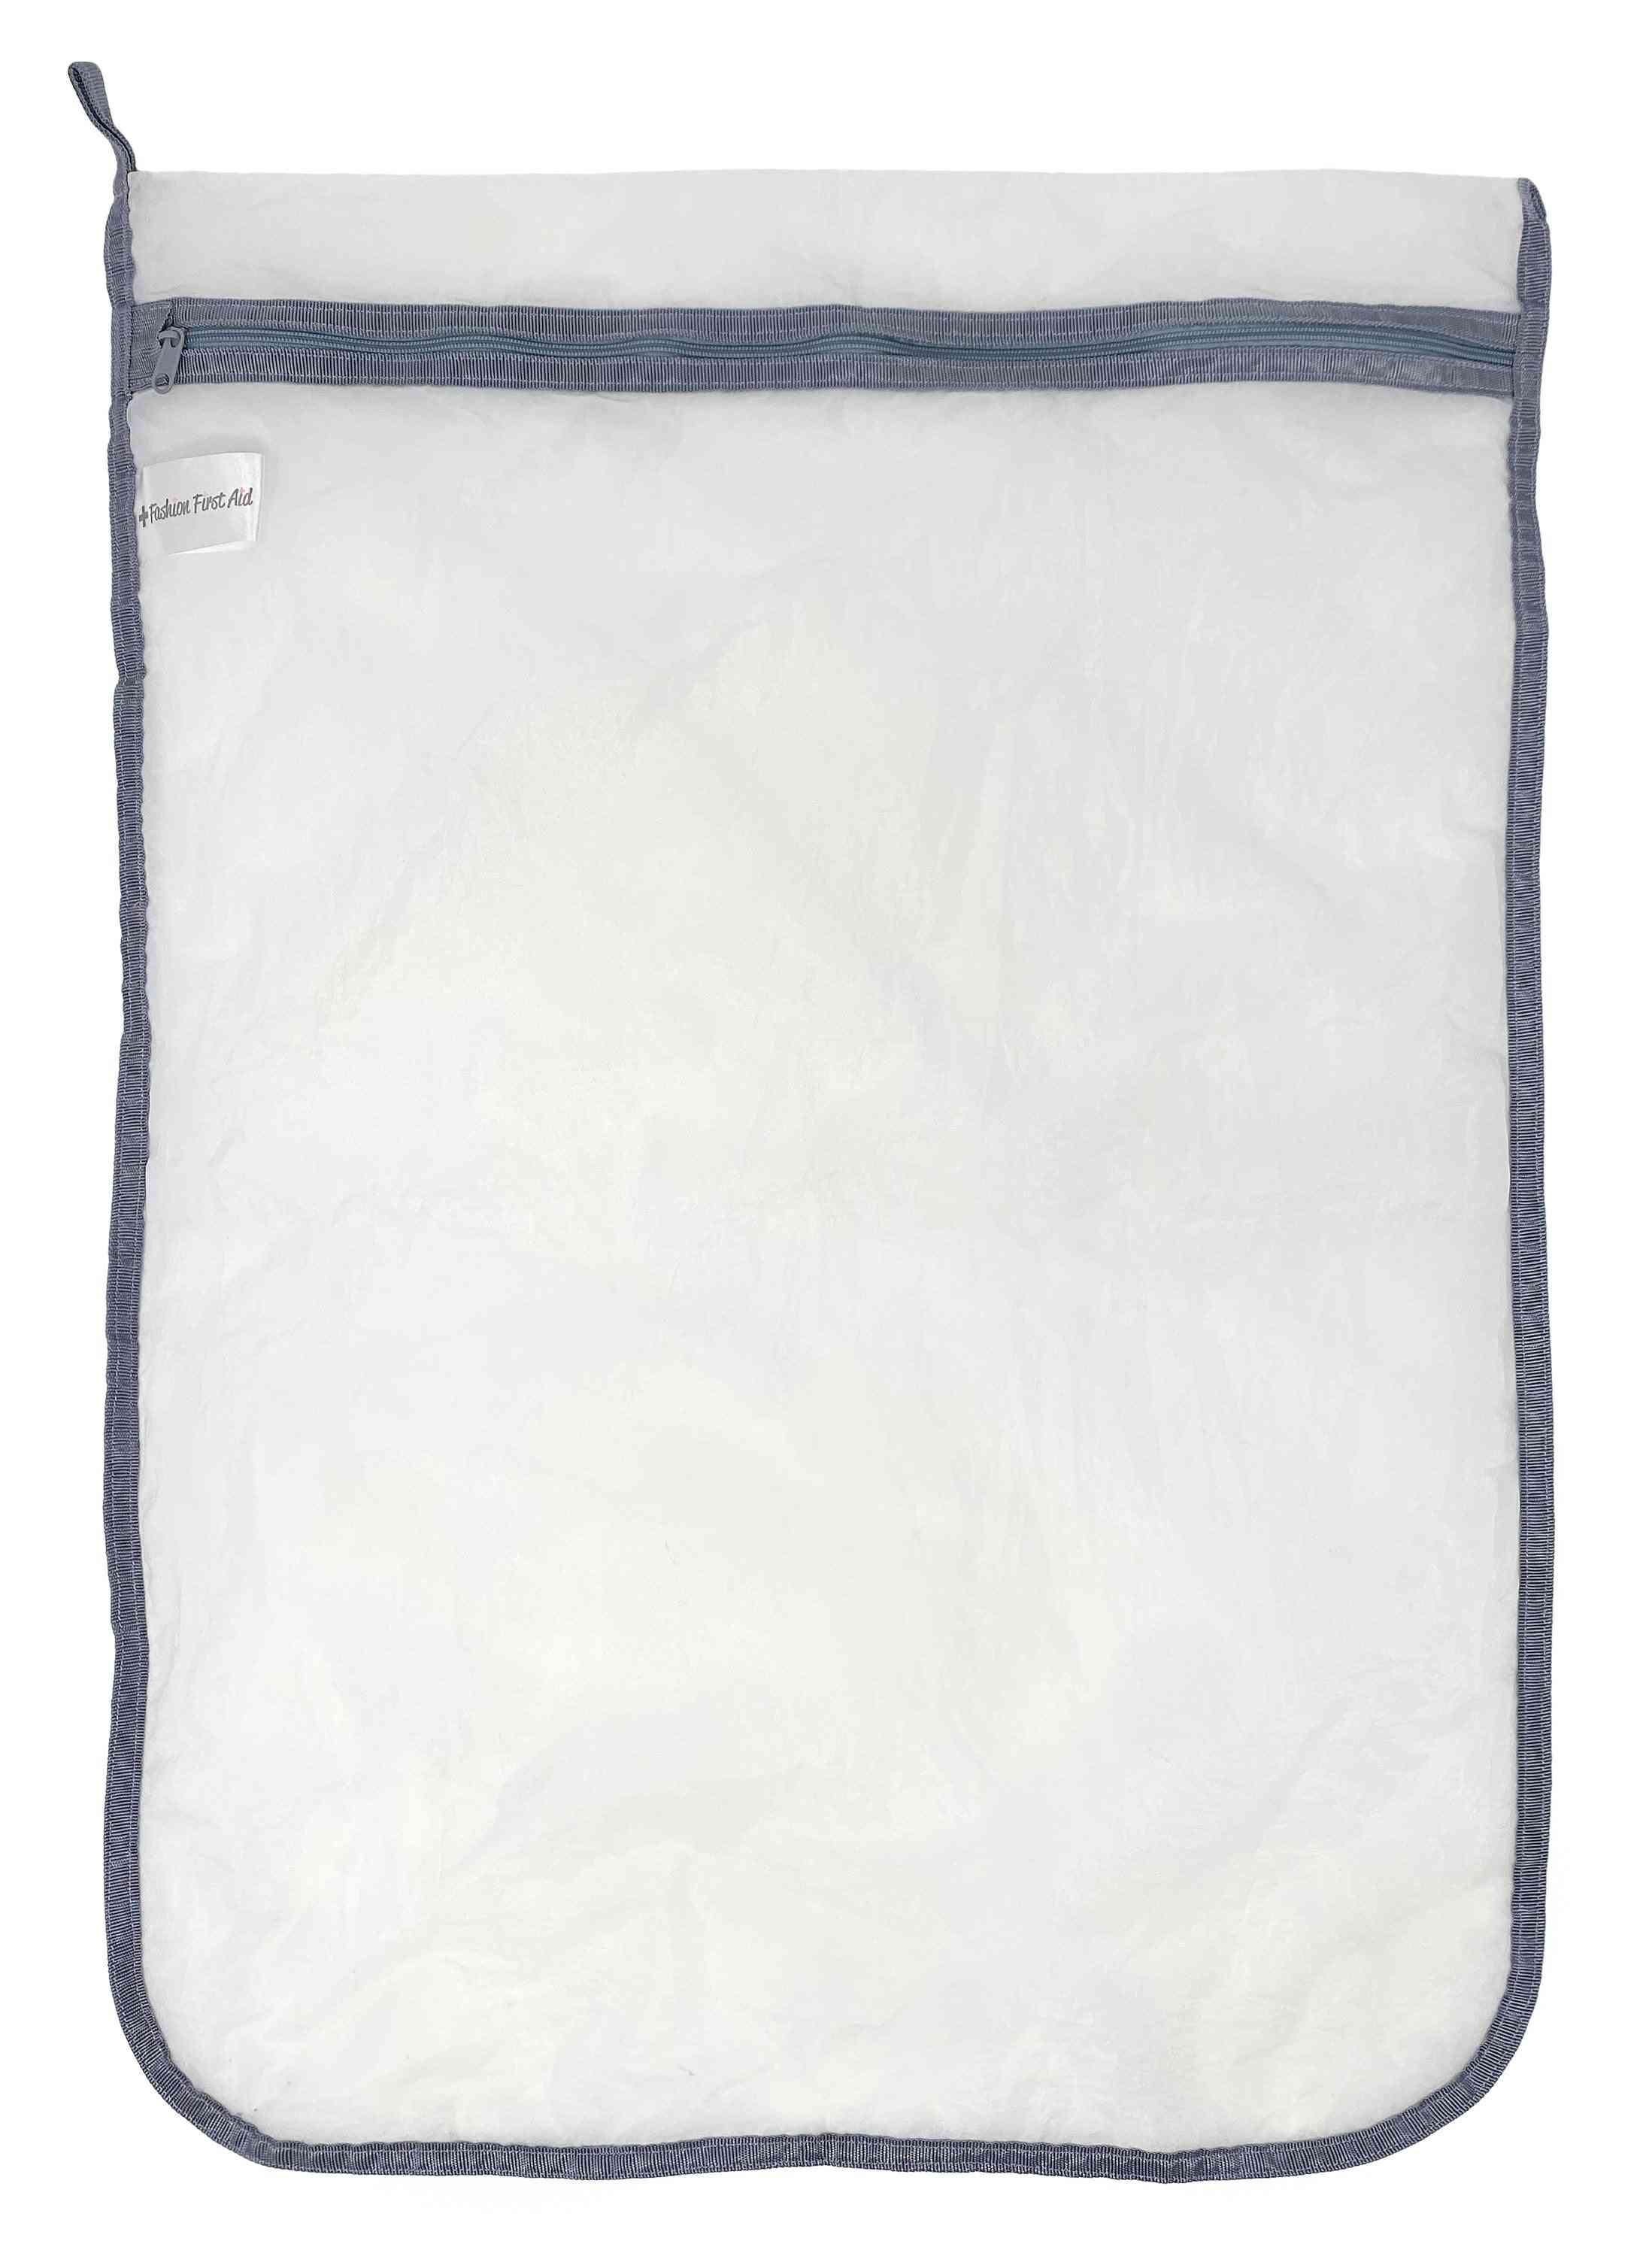 Delicates Defender: Microplastic Catching Laundry Wash Bag (large)